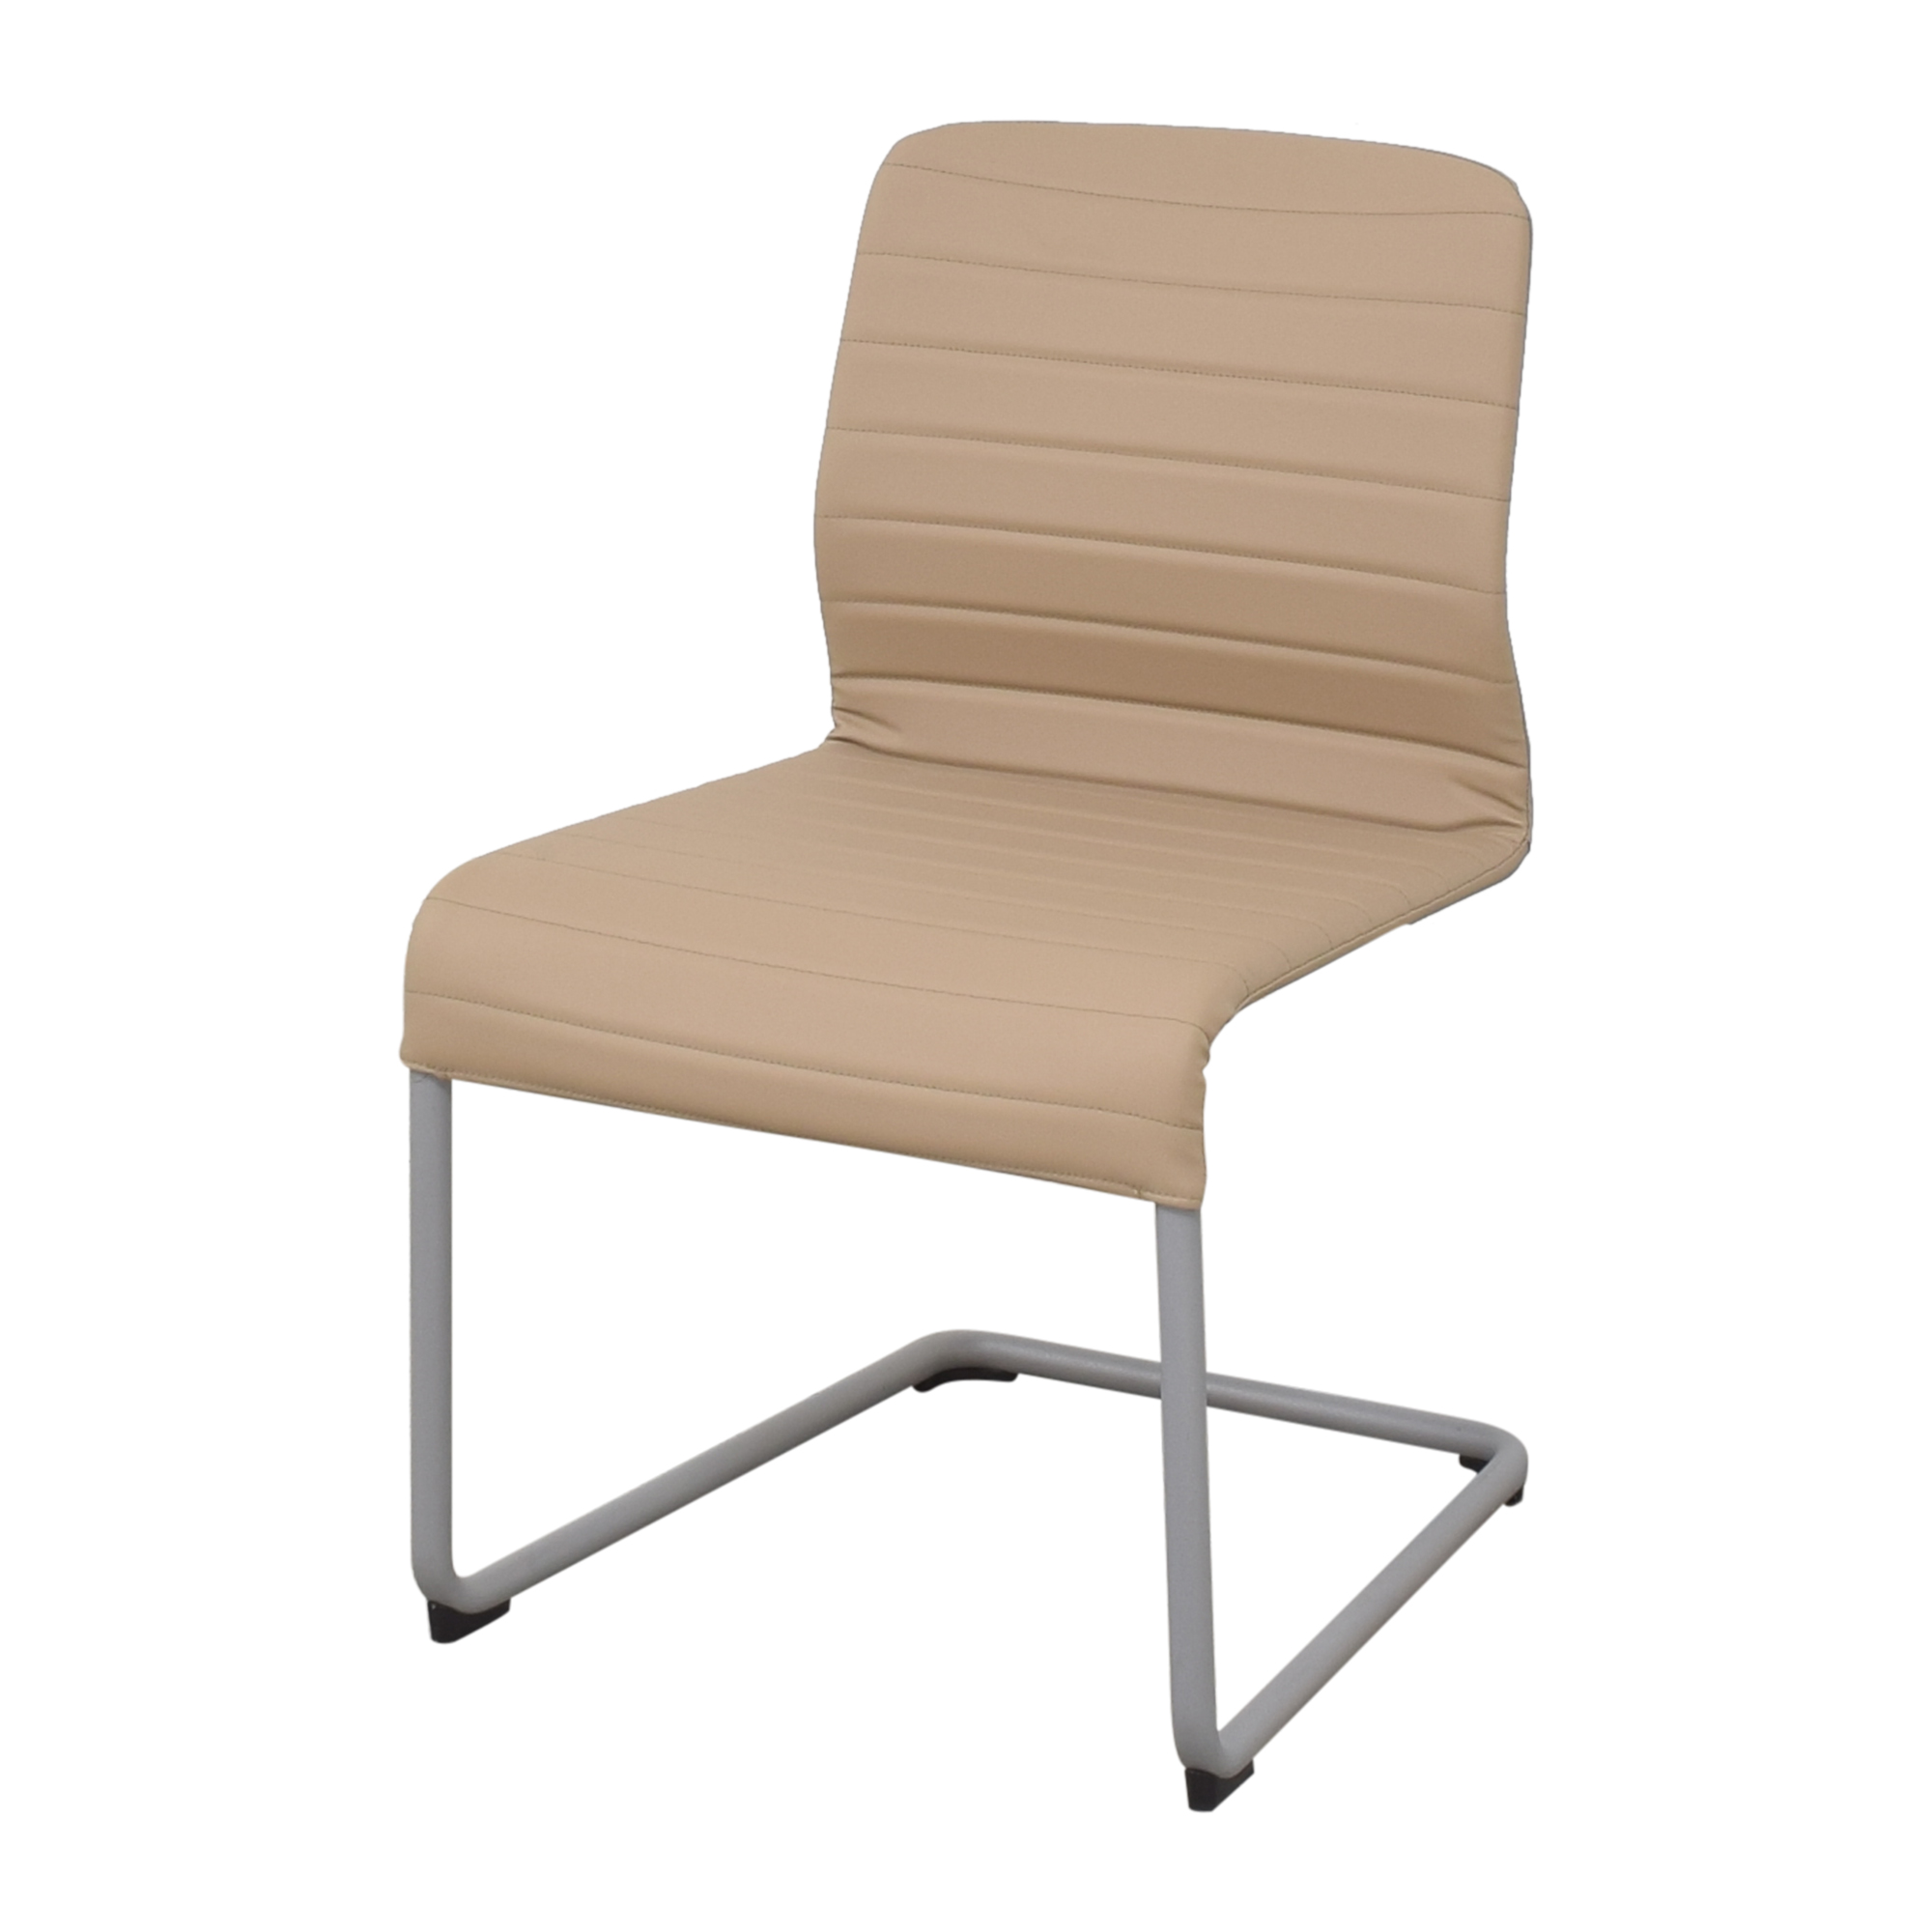 Global Furniture Group Lite Side Chairs / Chairs